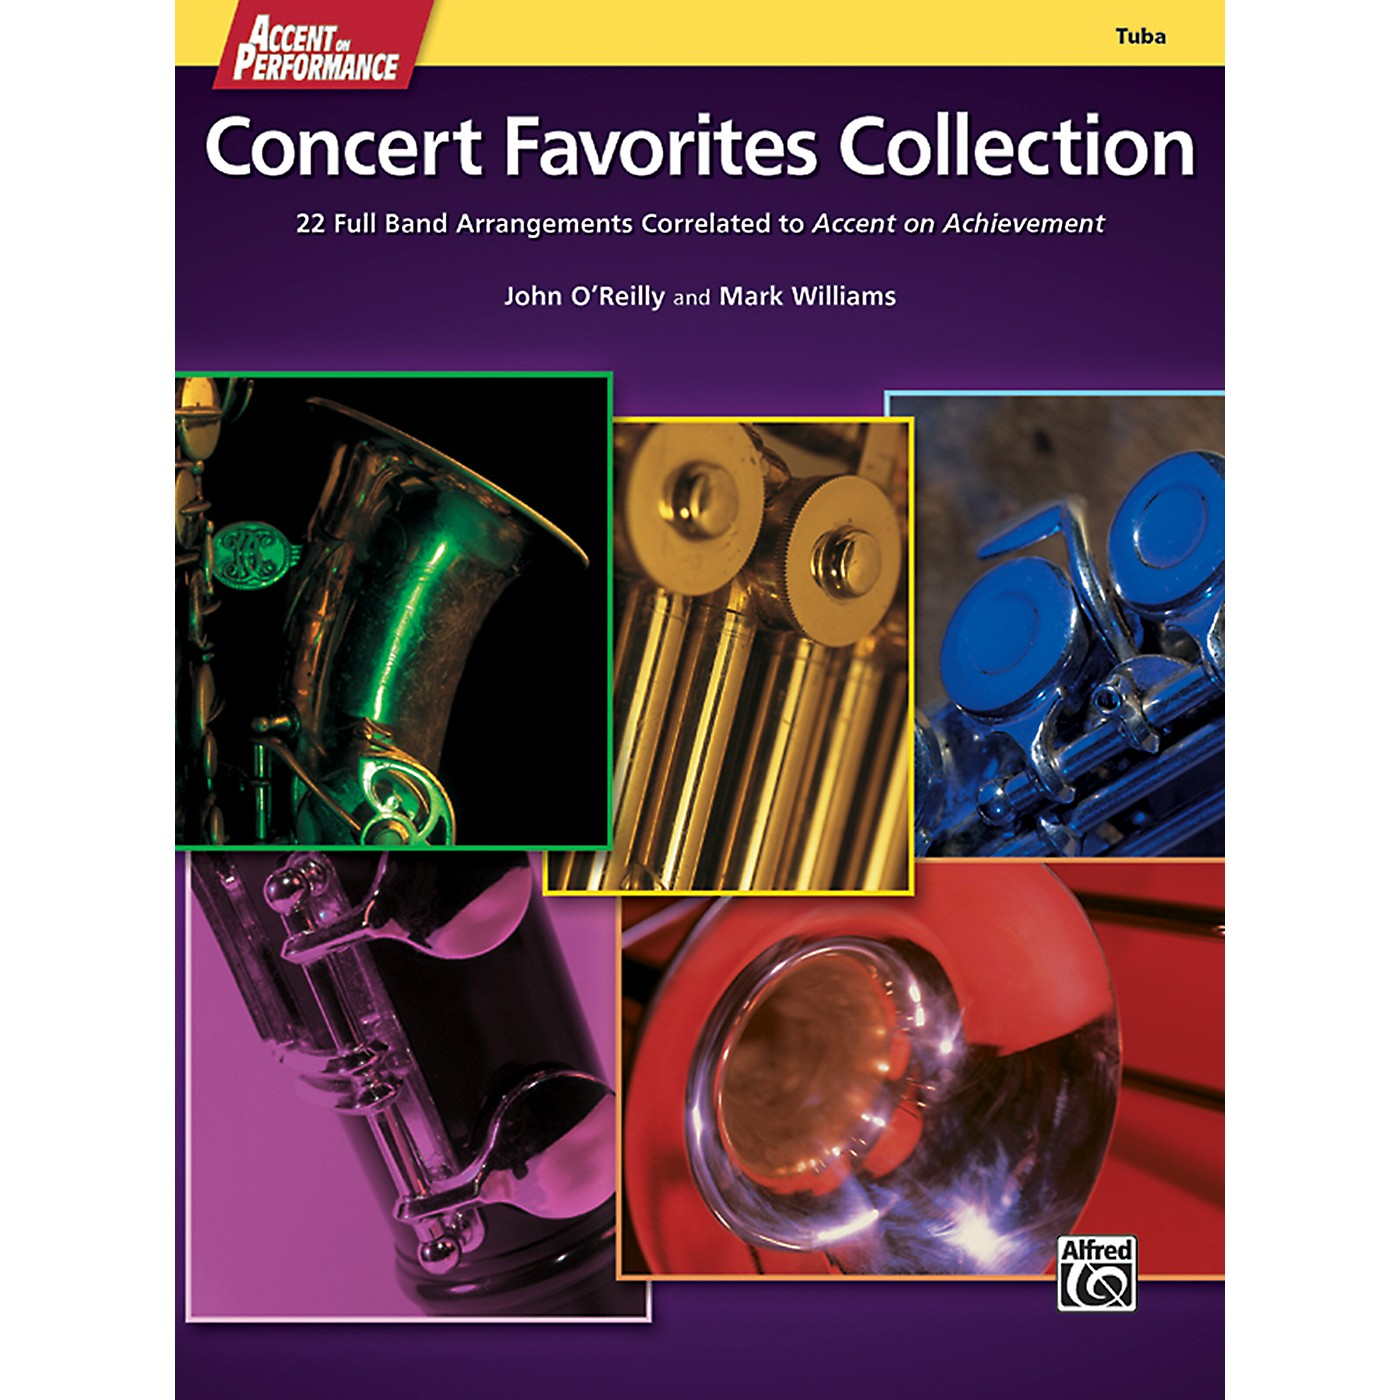 Alfred Accent on Performance Concert Favorites Collection Tuba Book thumbnail